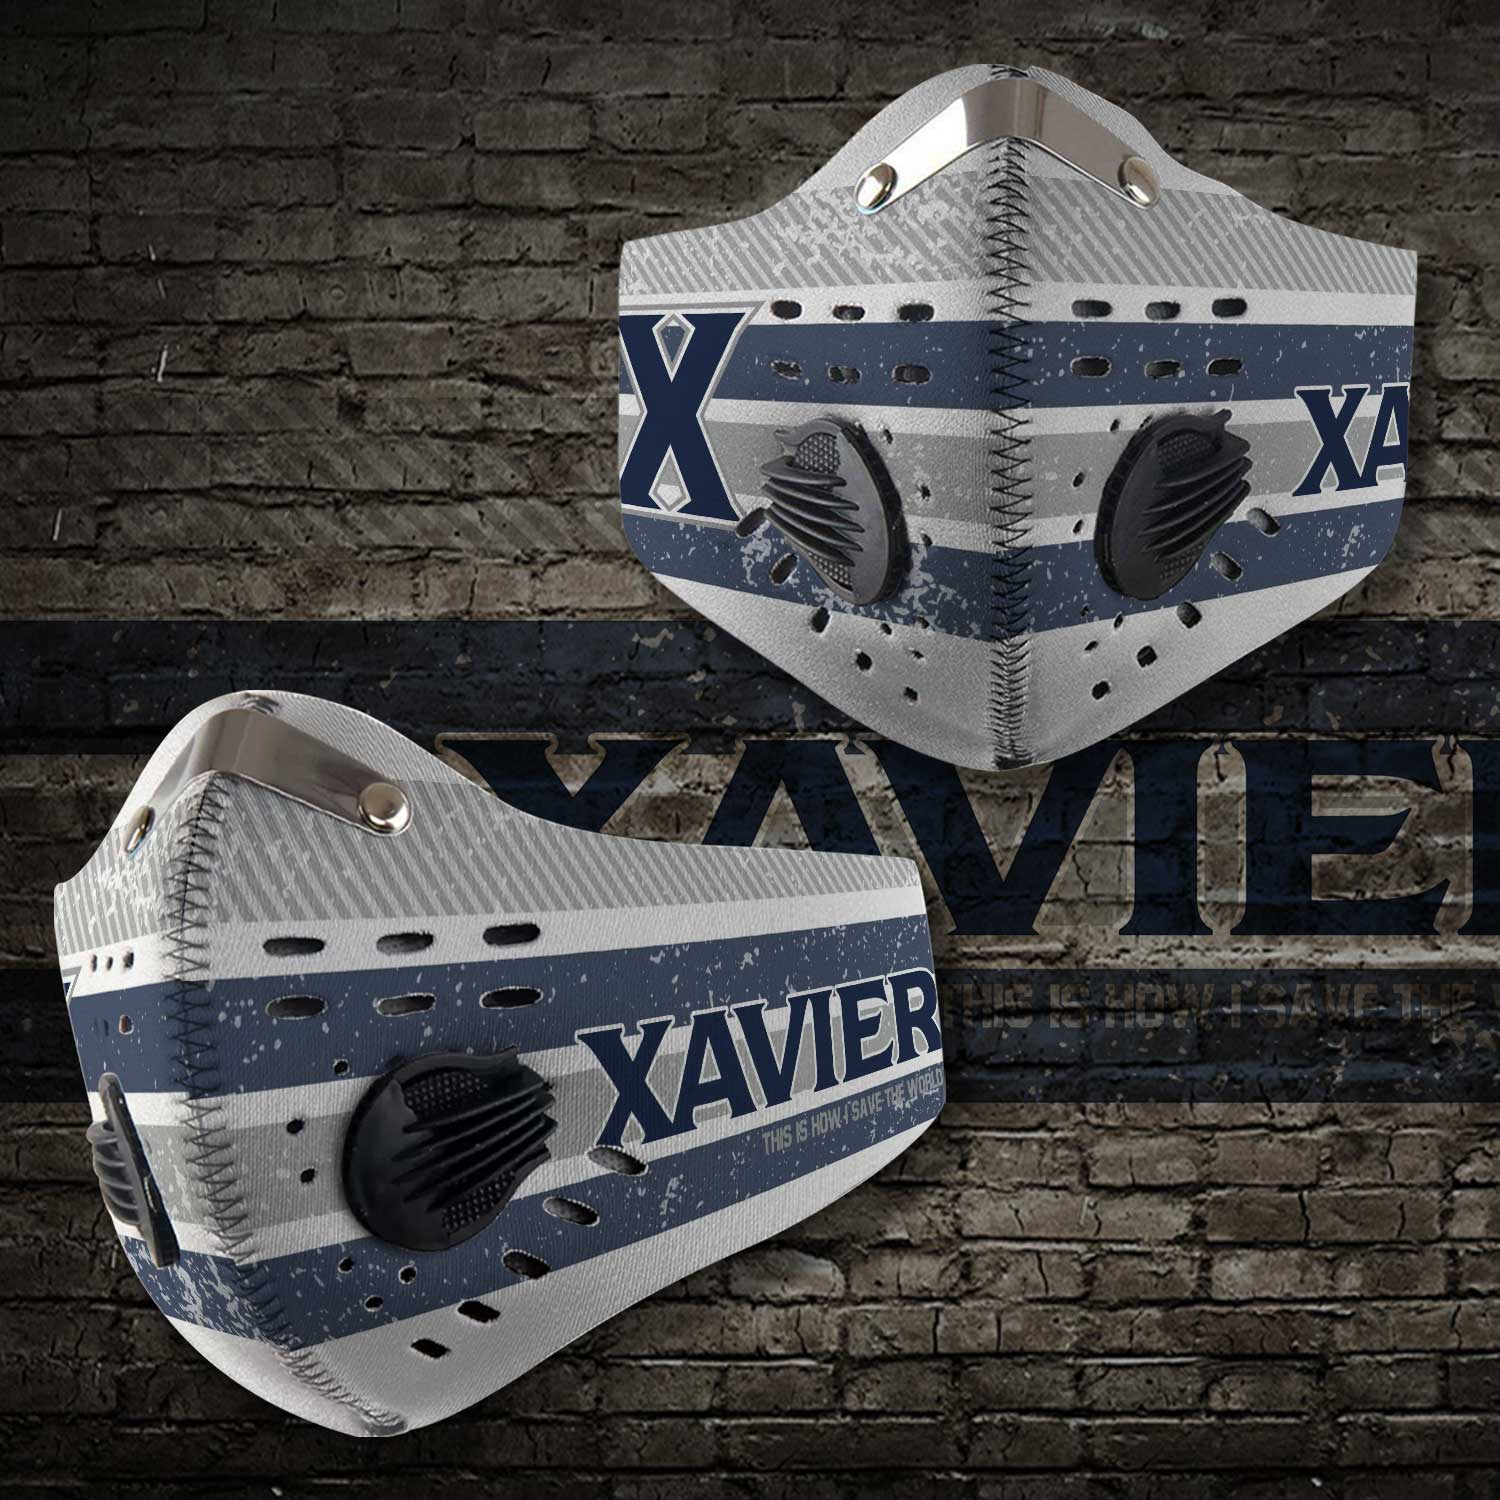 Xavier musketeers this is how i save the world carbon filter face mask 1